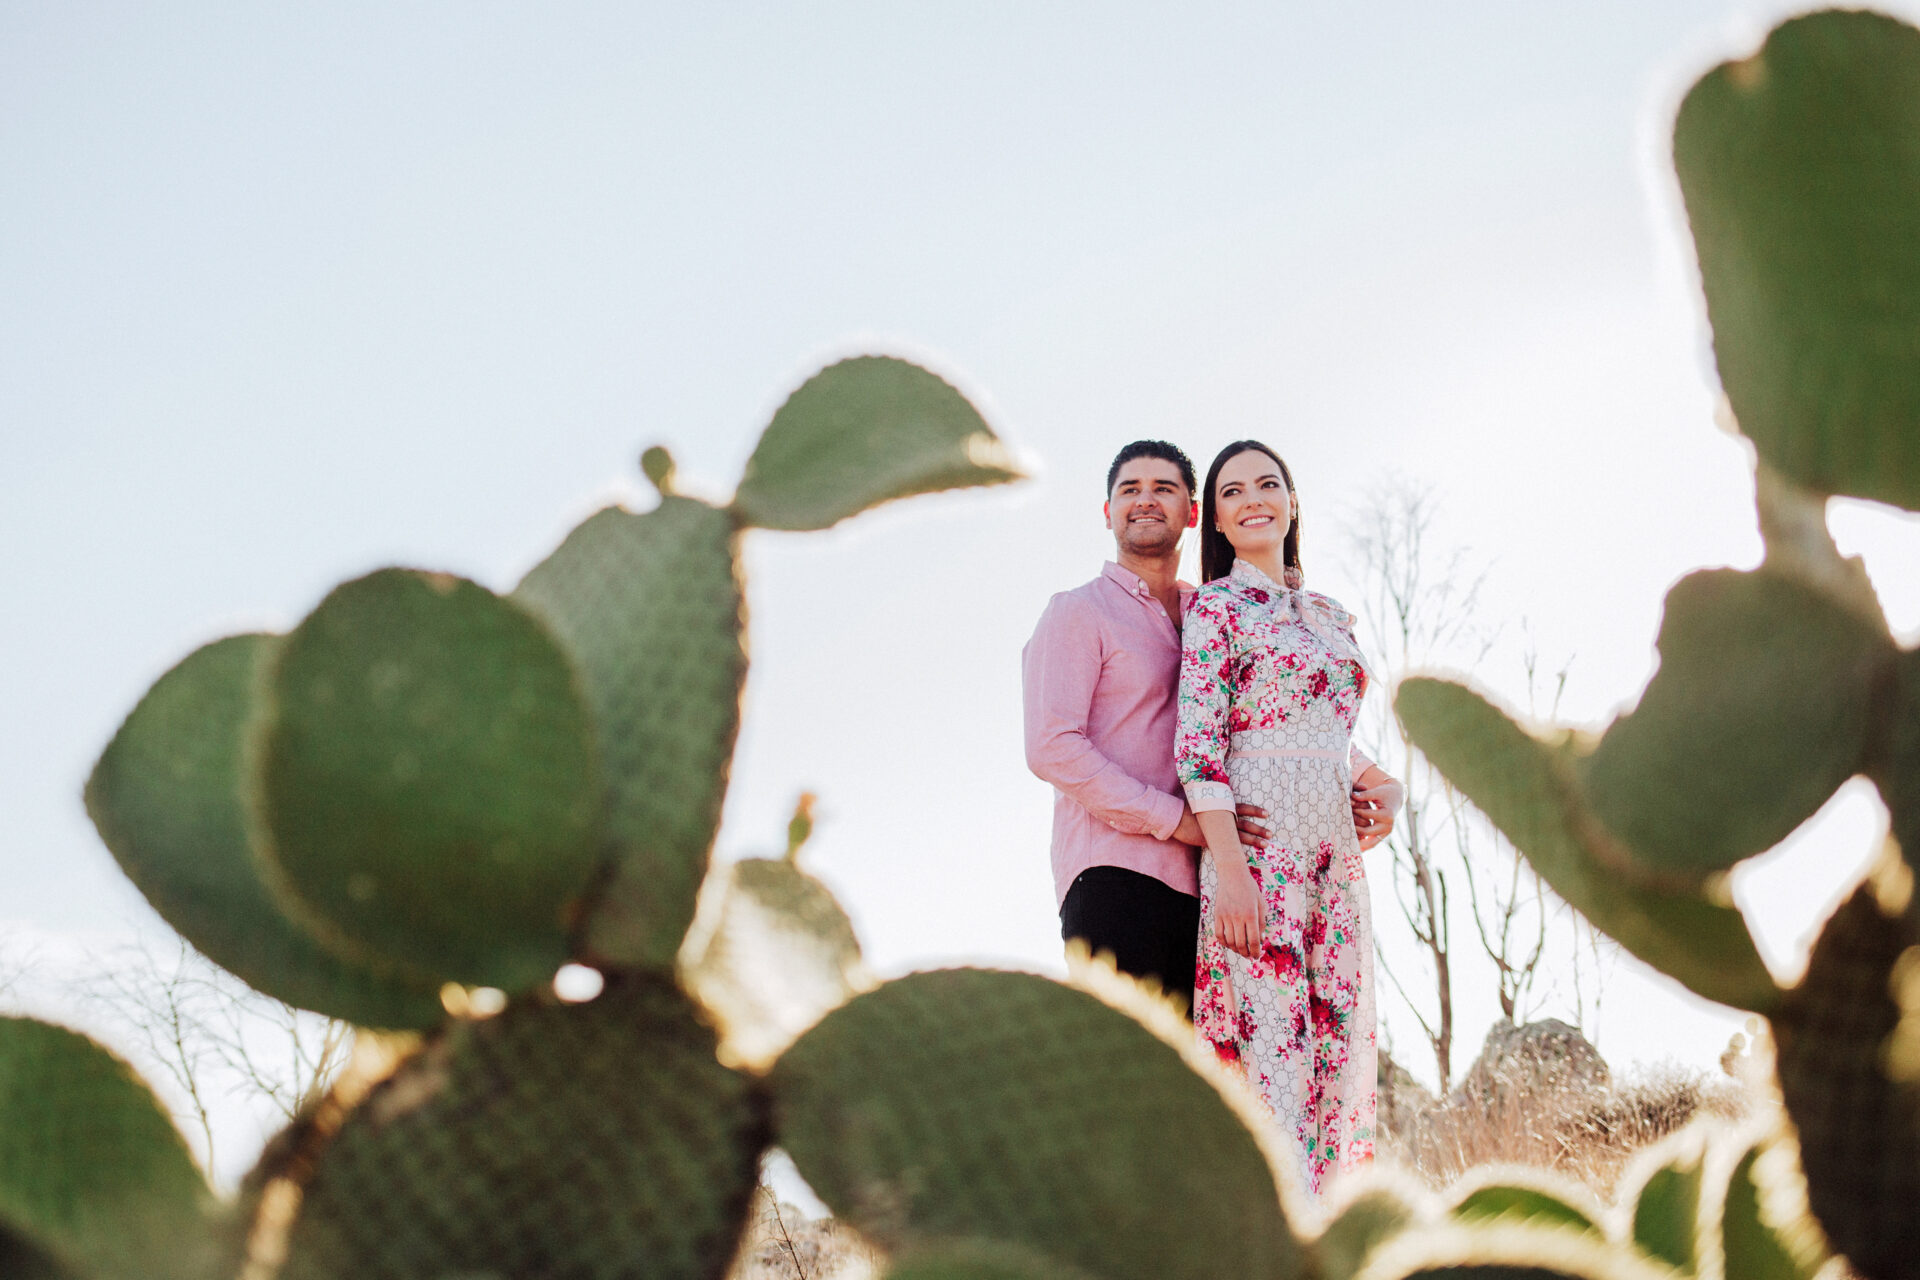 javier_noriega_fotografo_bodas_save_the_date_preboda_zacatecas_wedding_photographer7